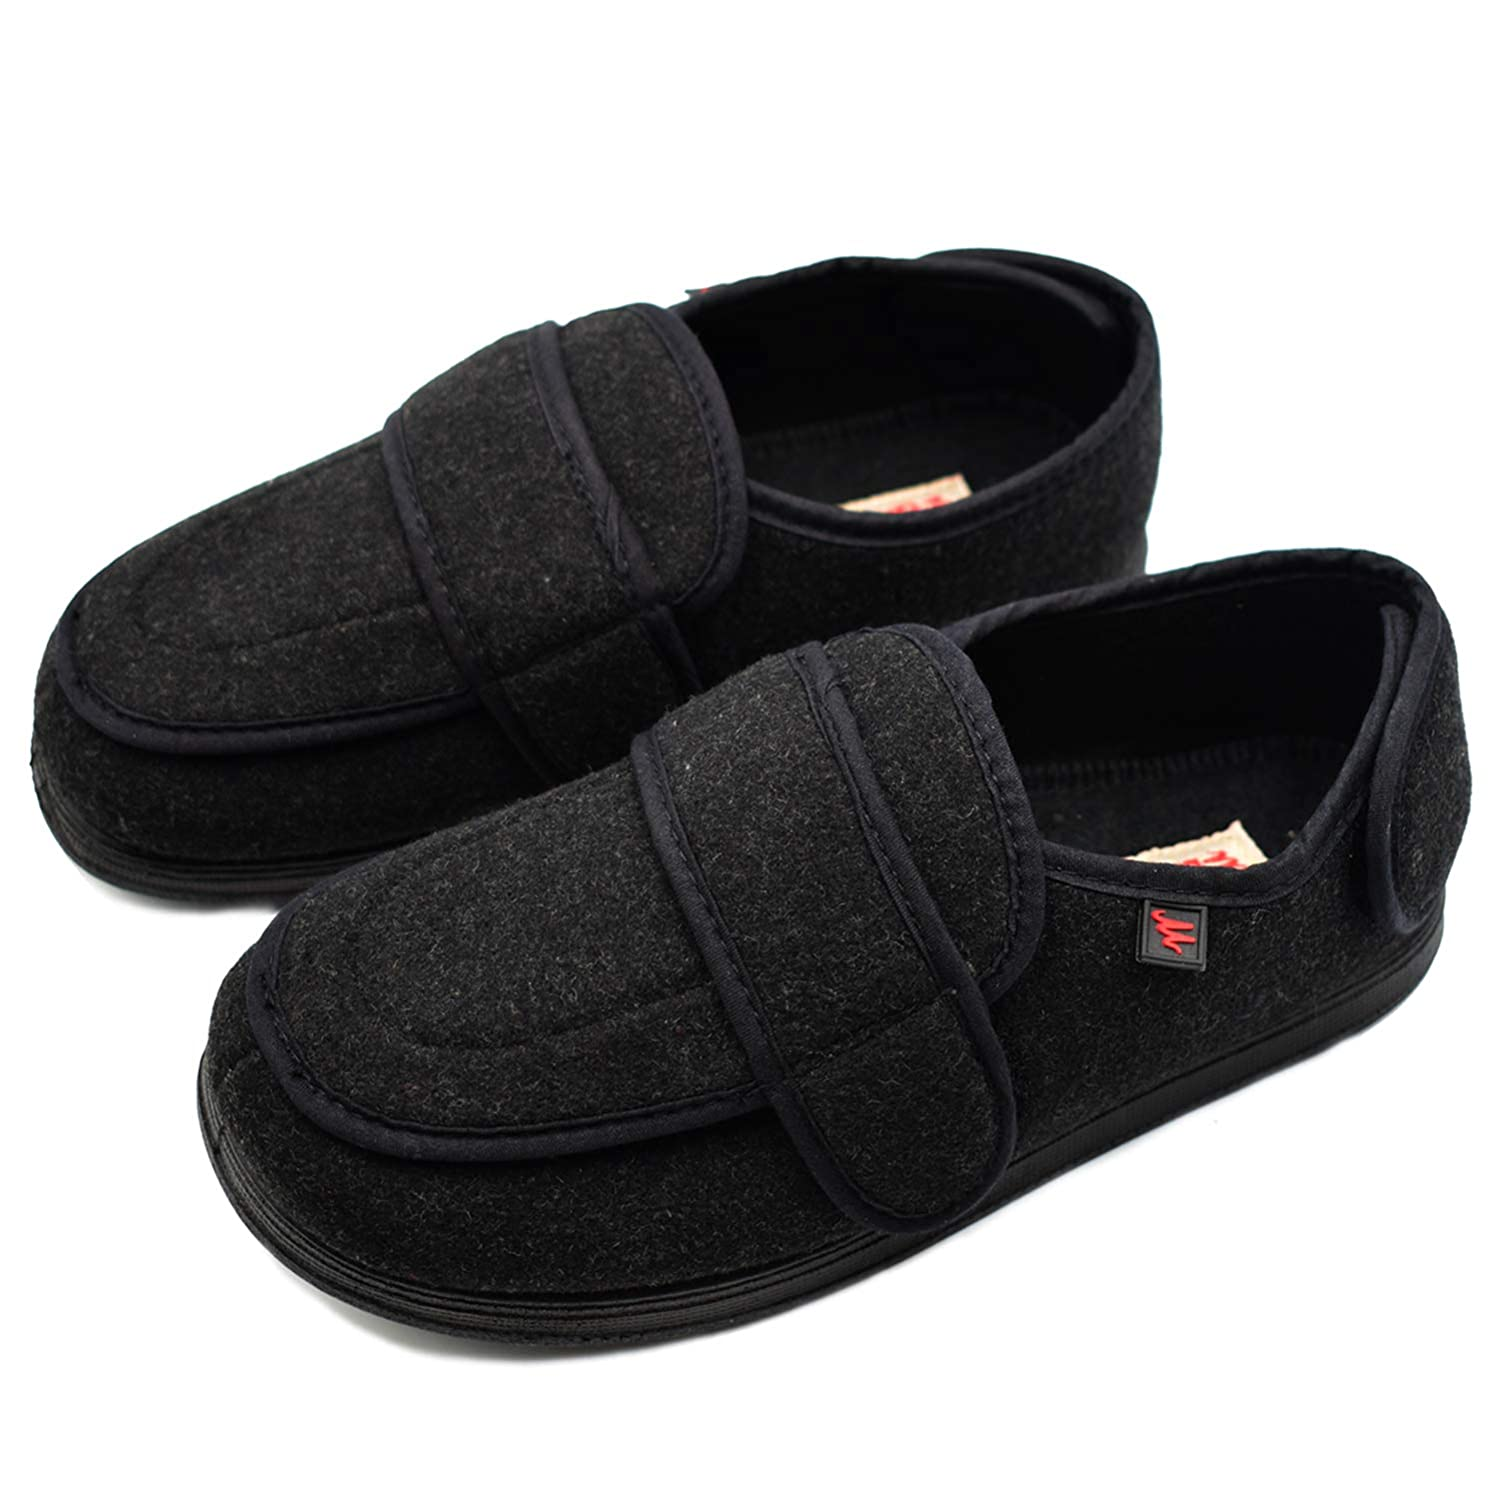 6073552d94e07 W&Lesvago Women's Extra Wide Width Adjustable Diabetic Slippers -  Comfortable Outdoor Shoes